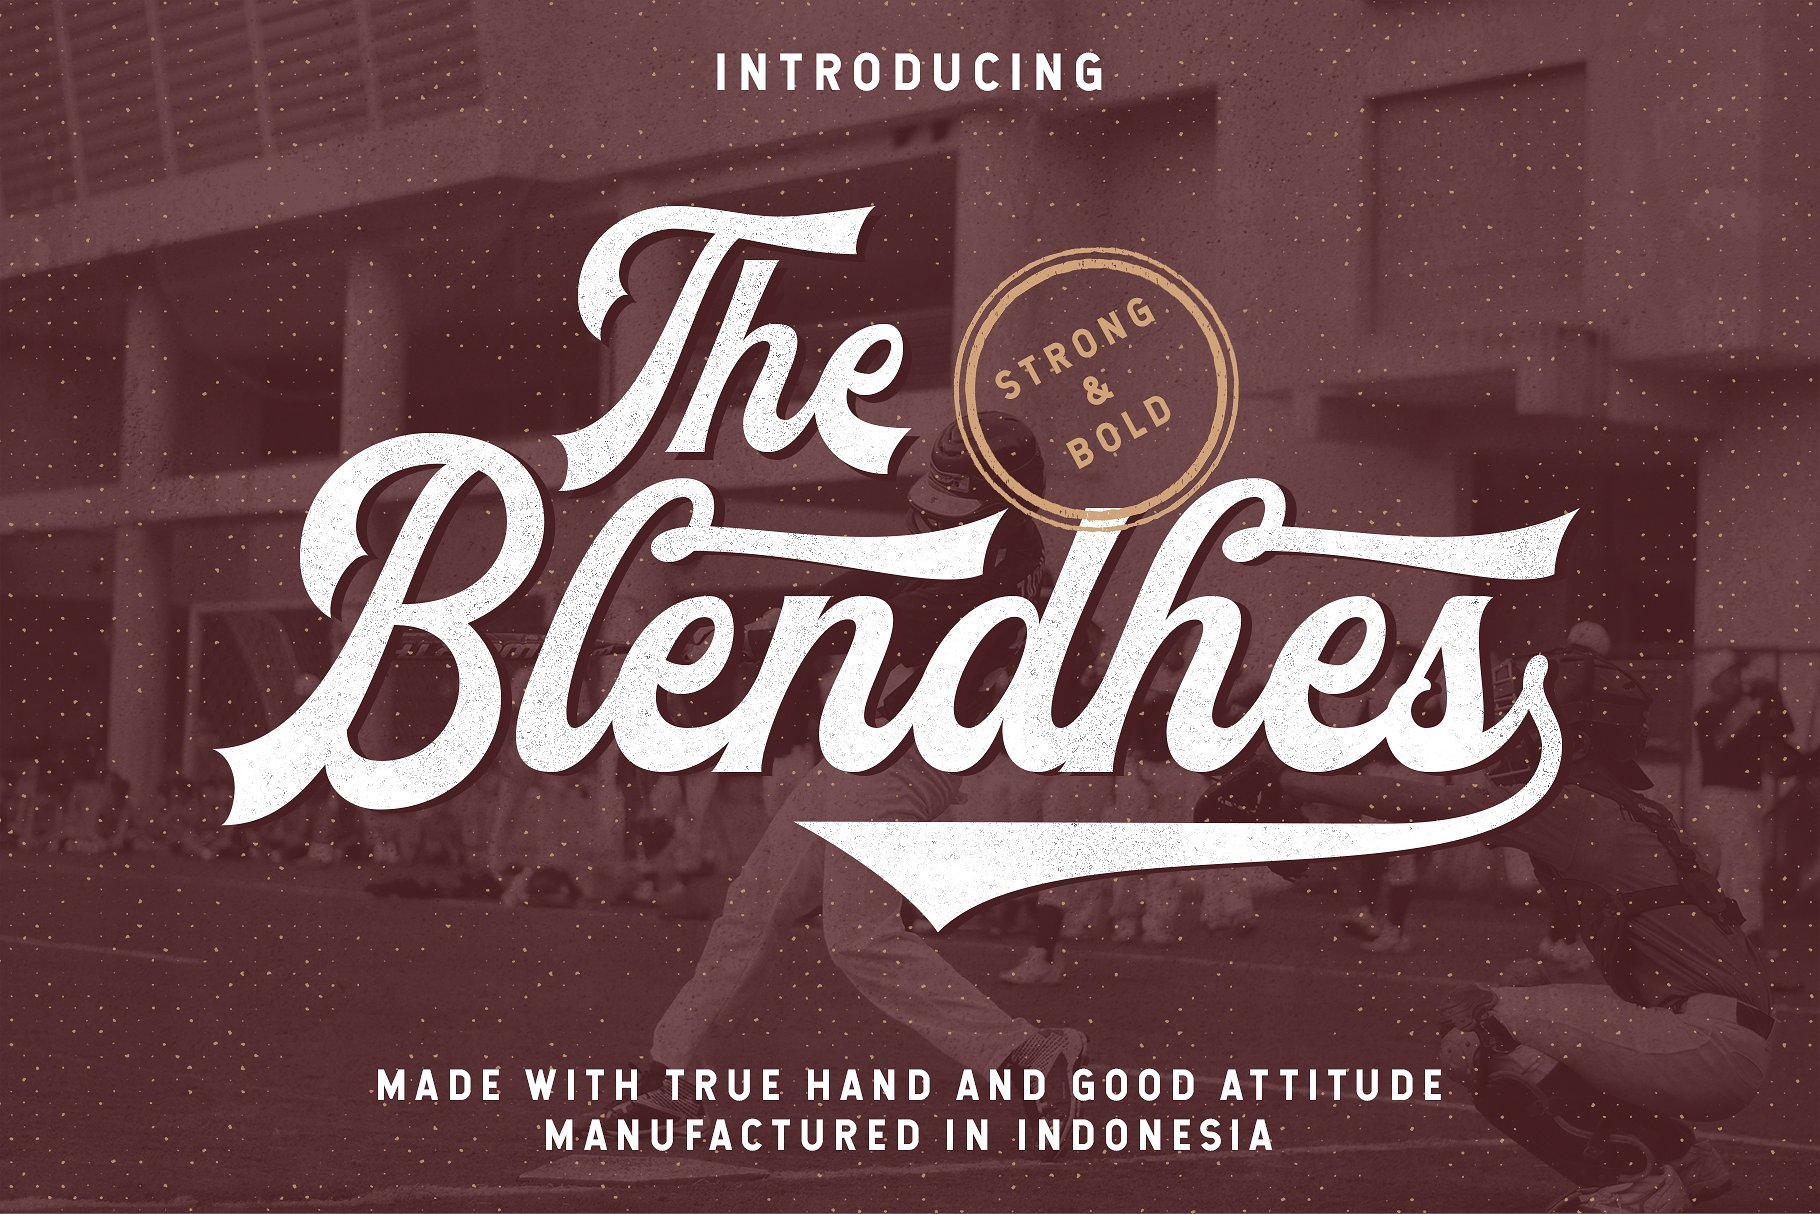 Free Download: The Blendhes Typeface